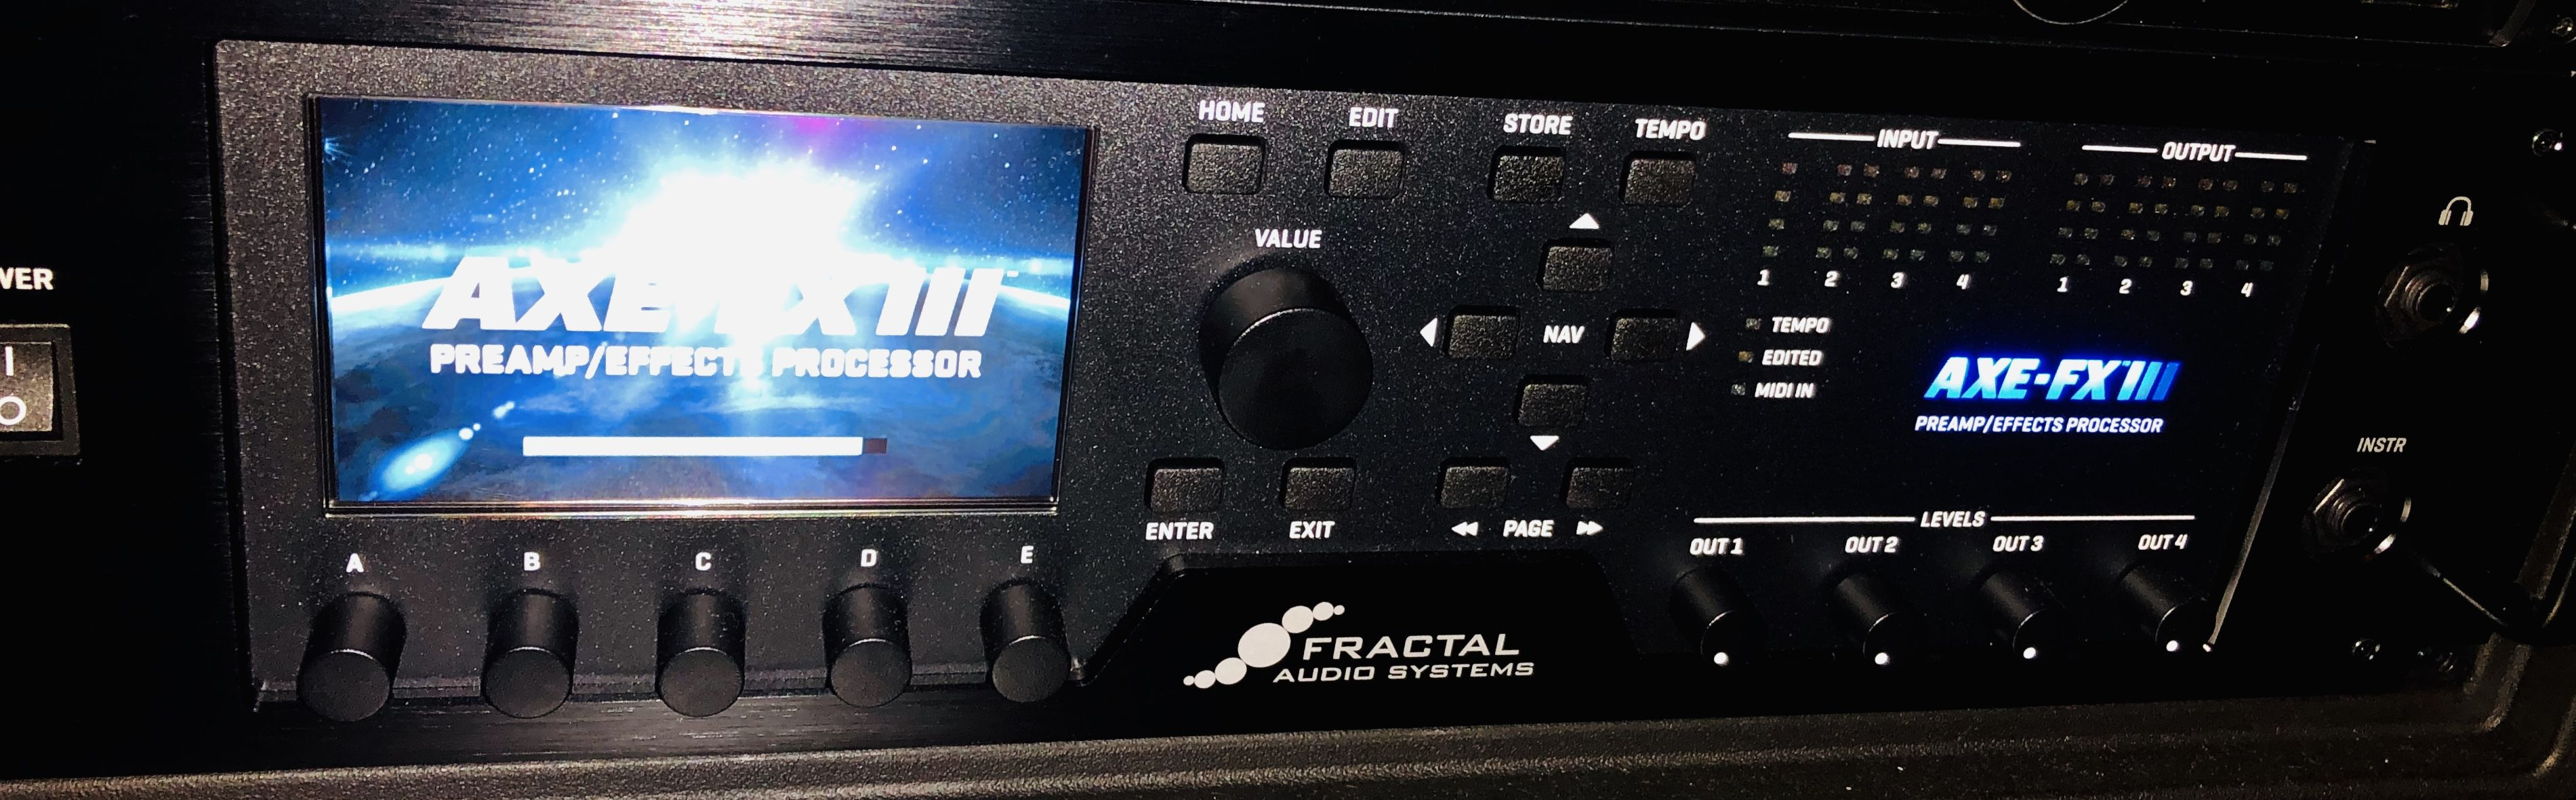 Sold - Like New Fractal Axe-FX III + FC-6 Bundle | The Gear Page